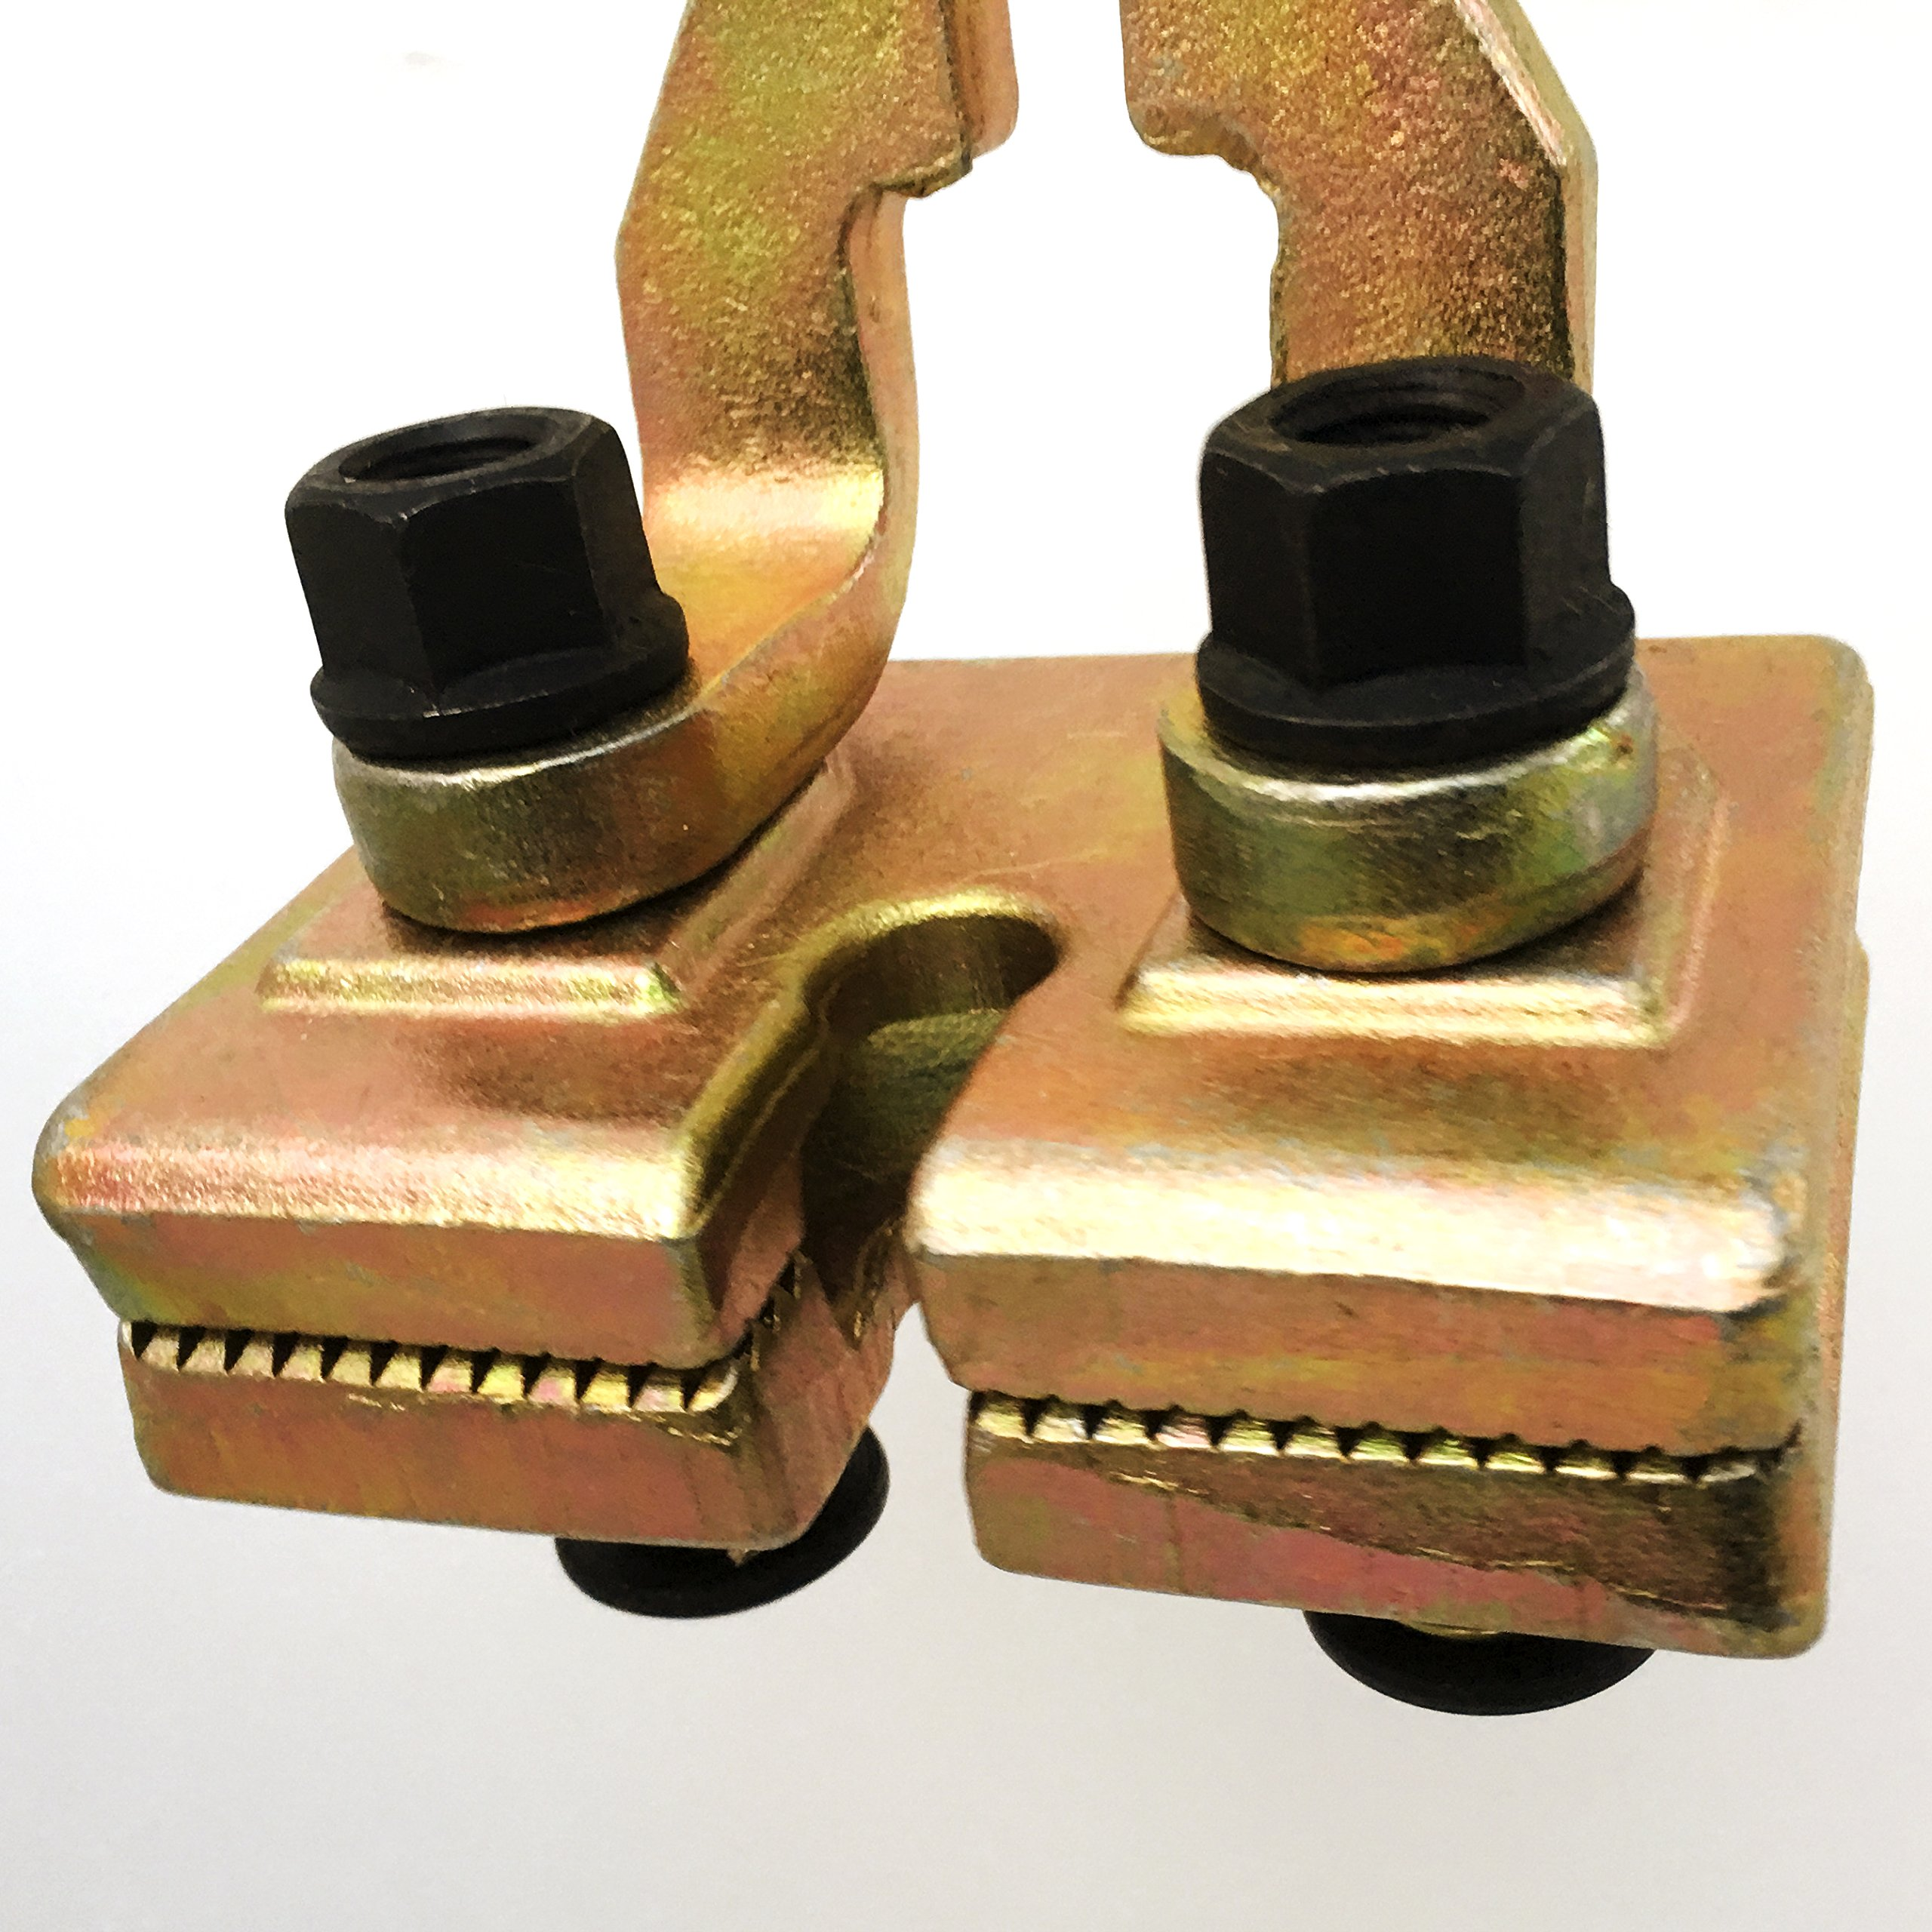 Frame Pulling Clamps (TWO WAY) 5 AND 3 Ton Pulling Capacity by Dynamic Automotive Supplies (Image #3)